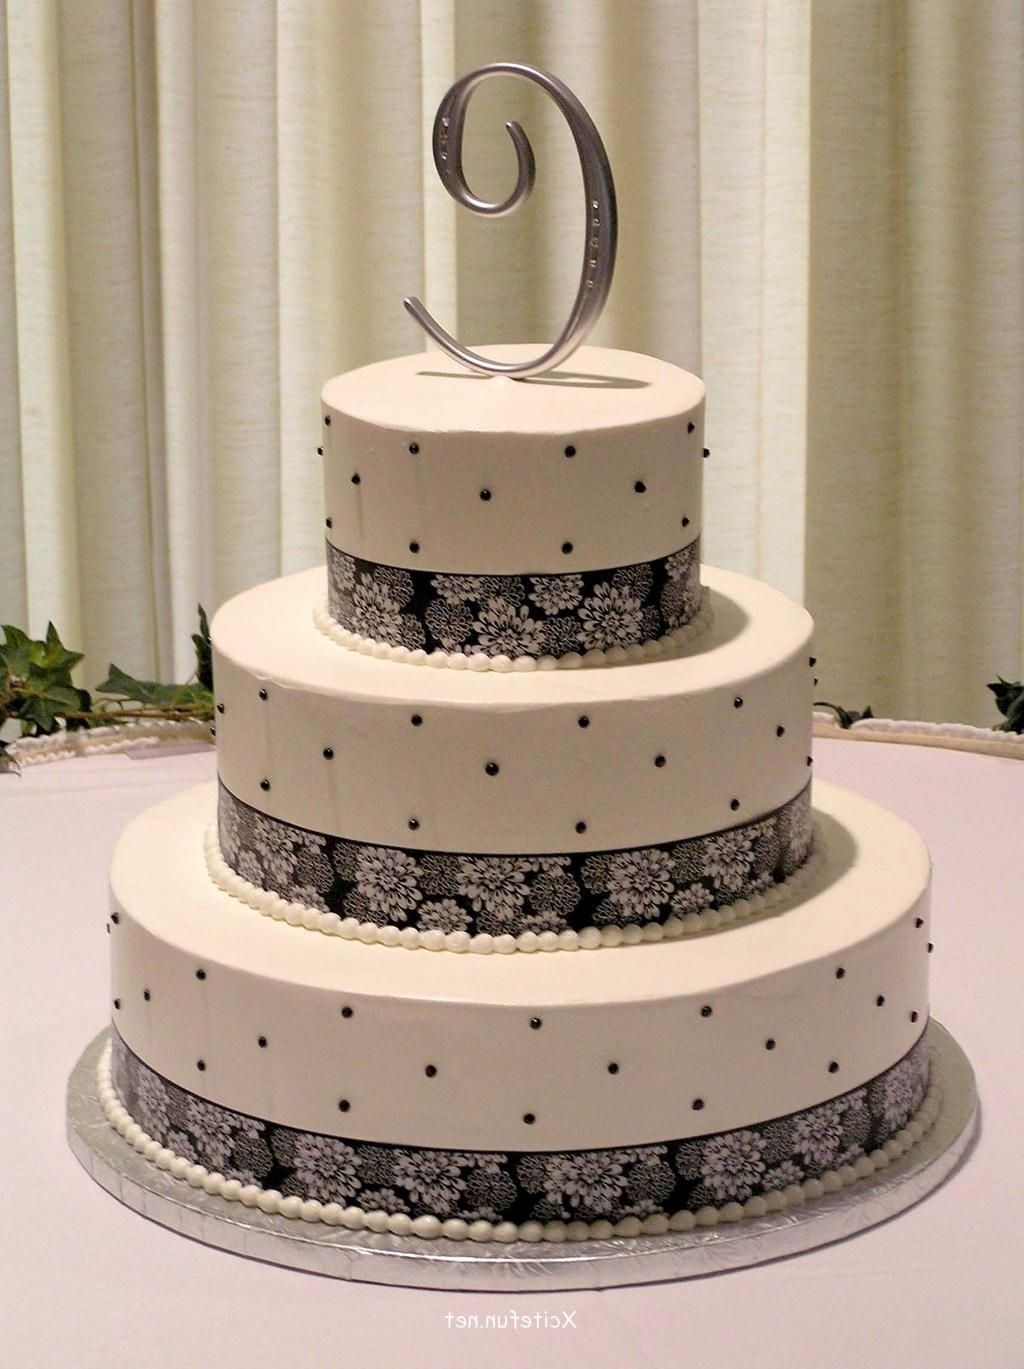 Wedding Cakes Near Gatlinburg Tn Dress Pinterest Cake And Jewelry